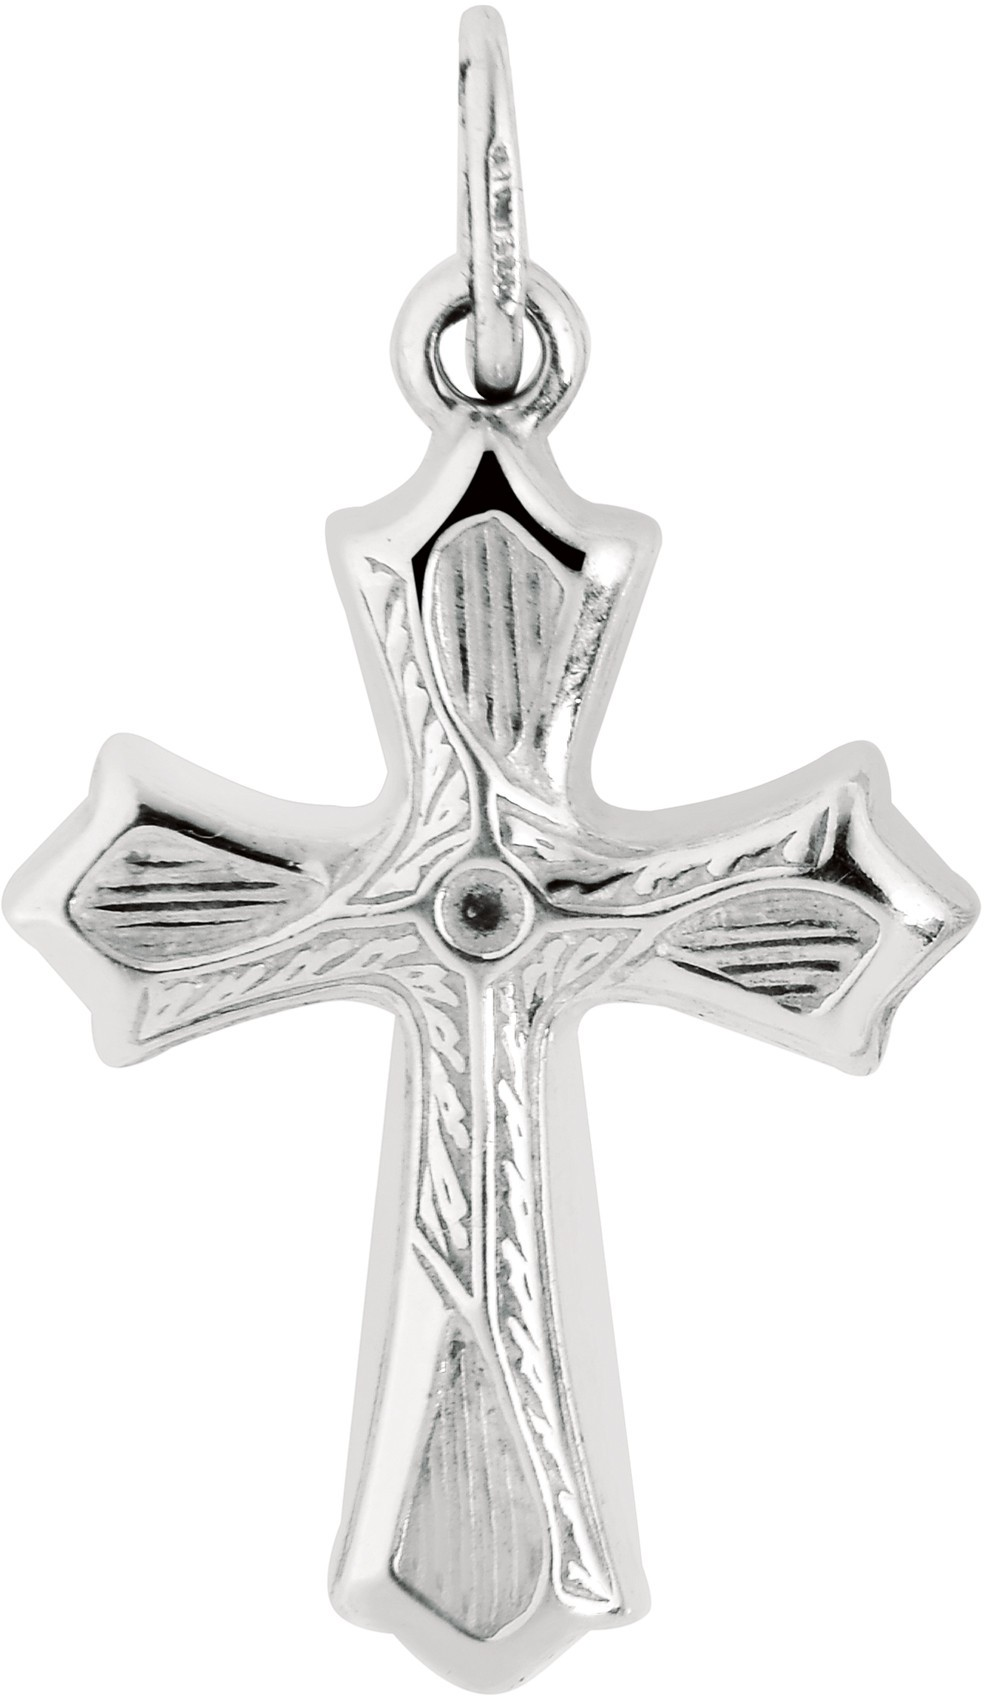 "Silver Rhodium Plated 18x28mm (0.71""x1.1"") Shiny Textured Fancy Cross Pendant - DISCONTINUED"